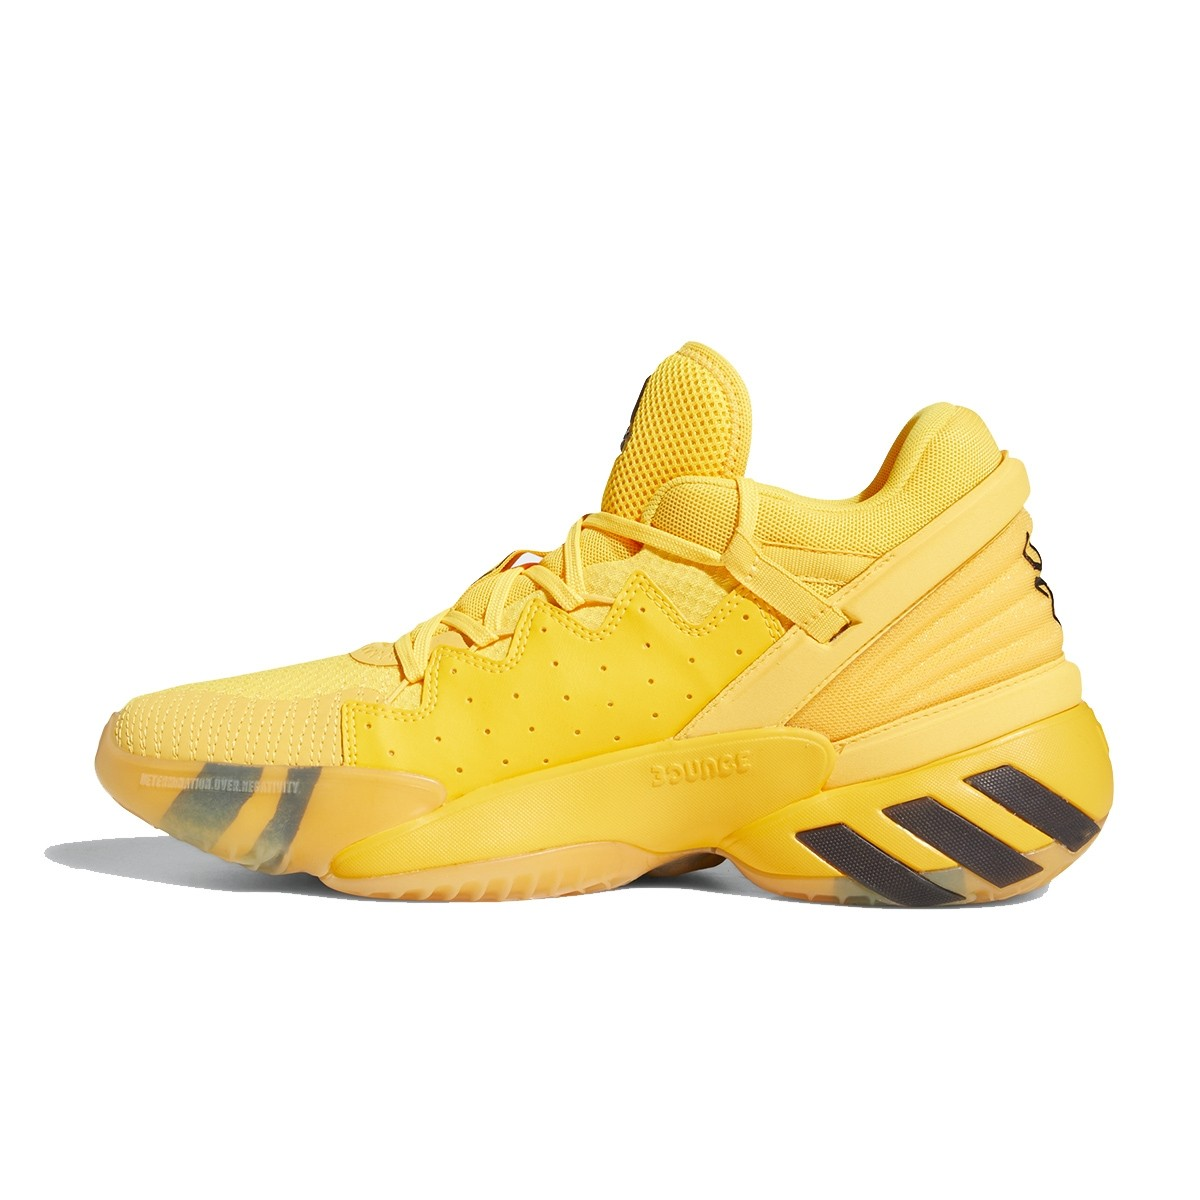 ADIDAS D.O.N. Issue 2 'Crayola Gold'-FW8518